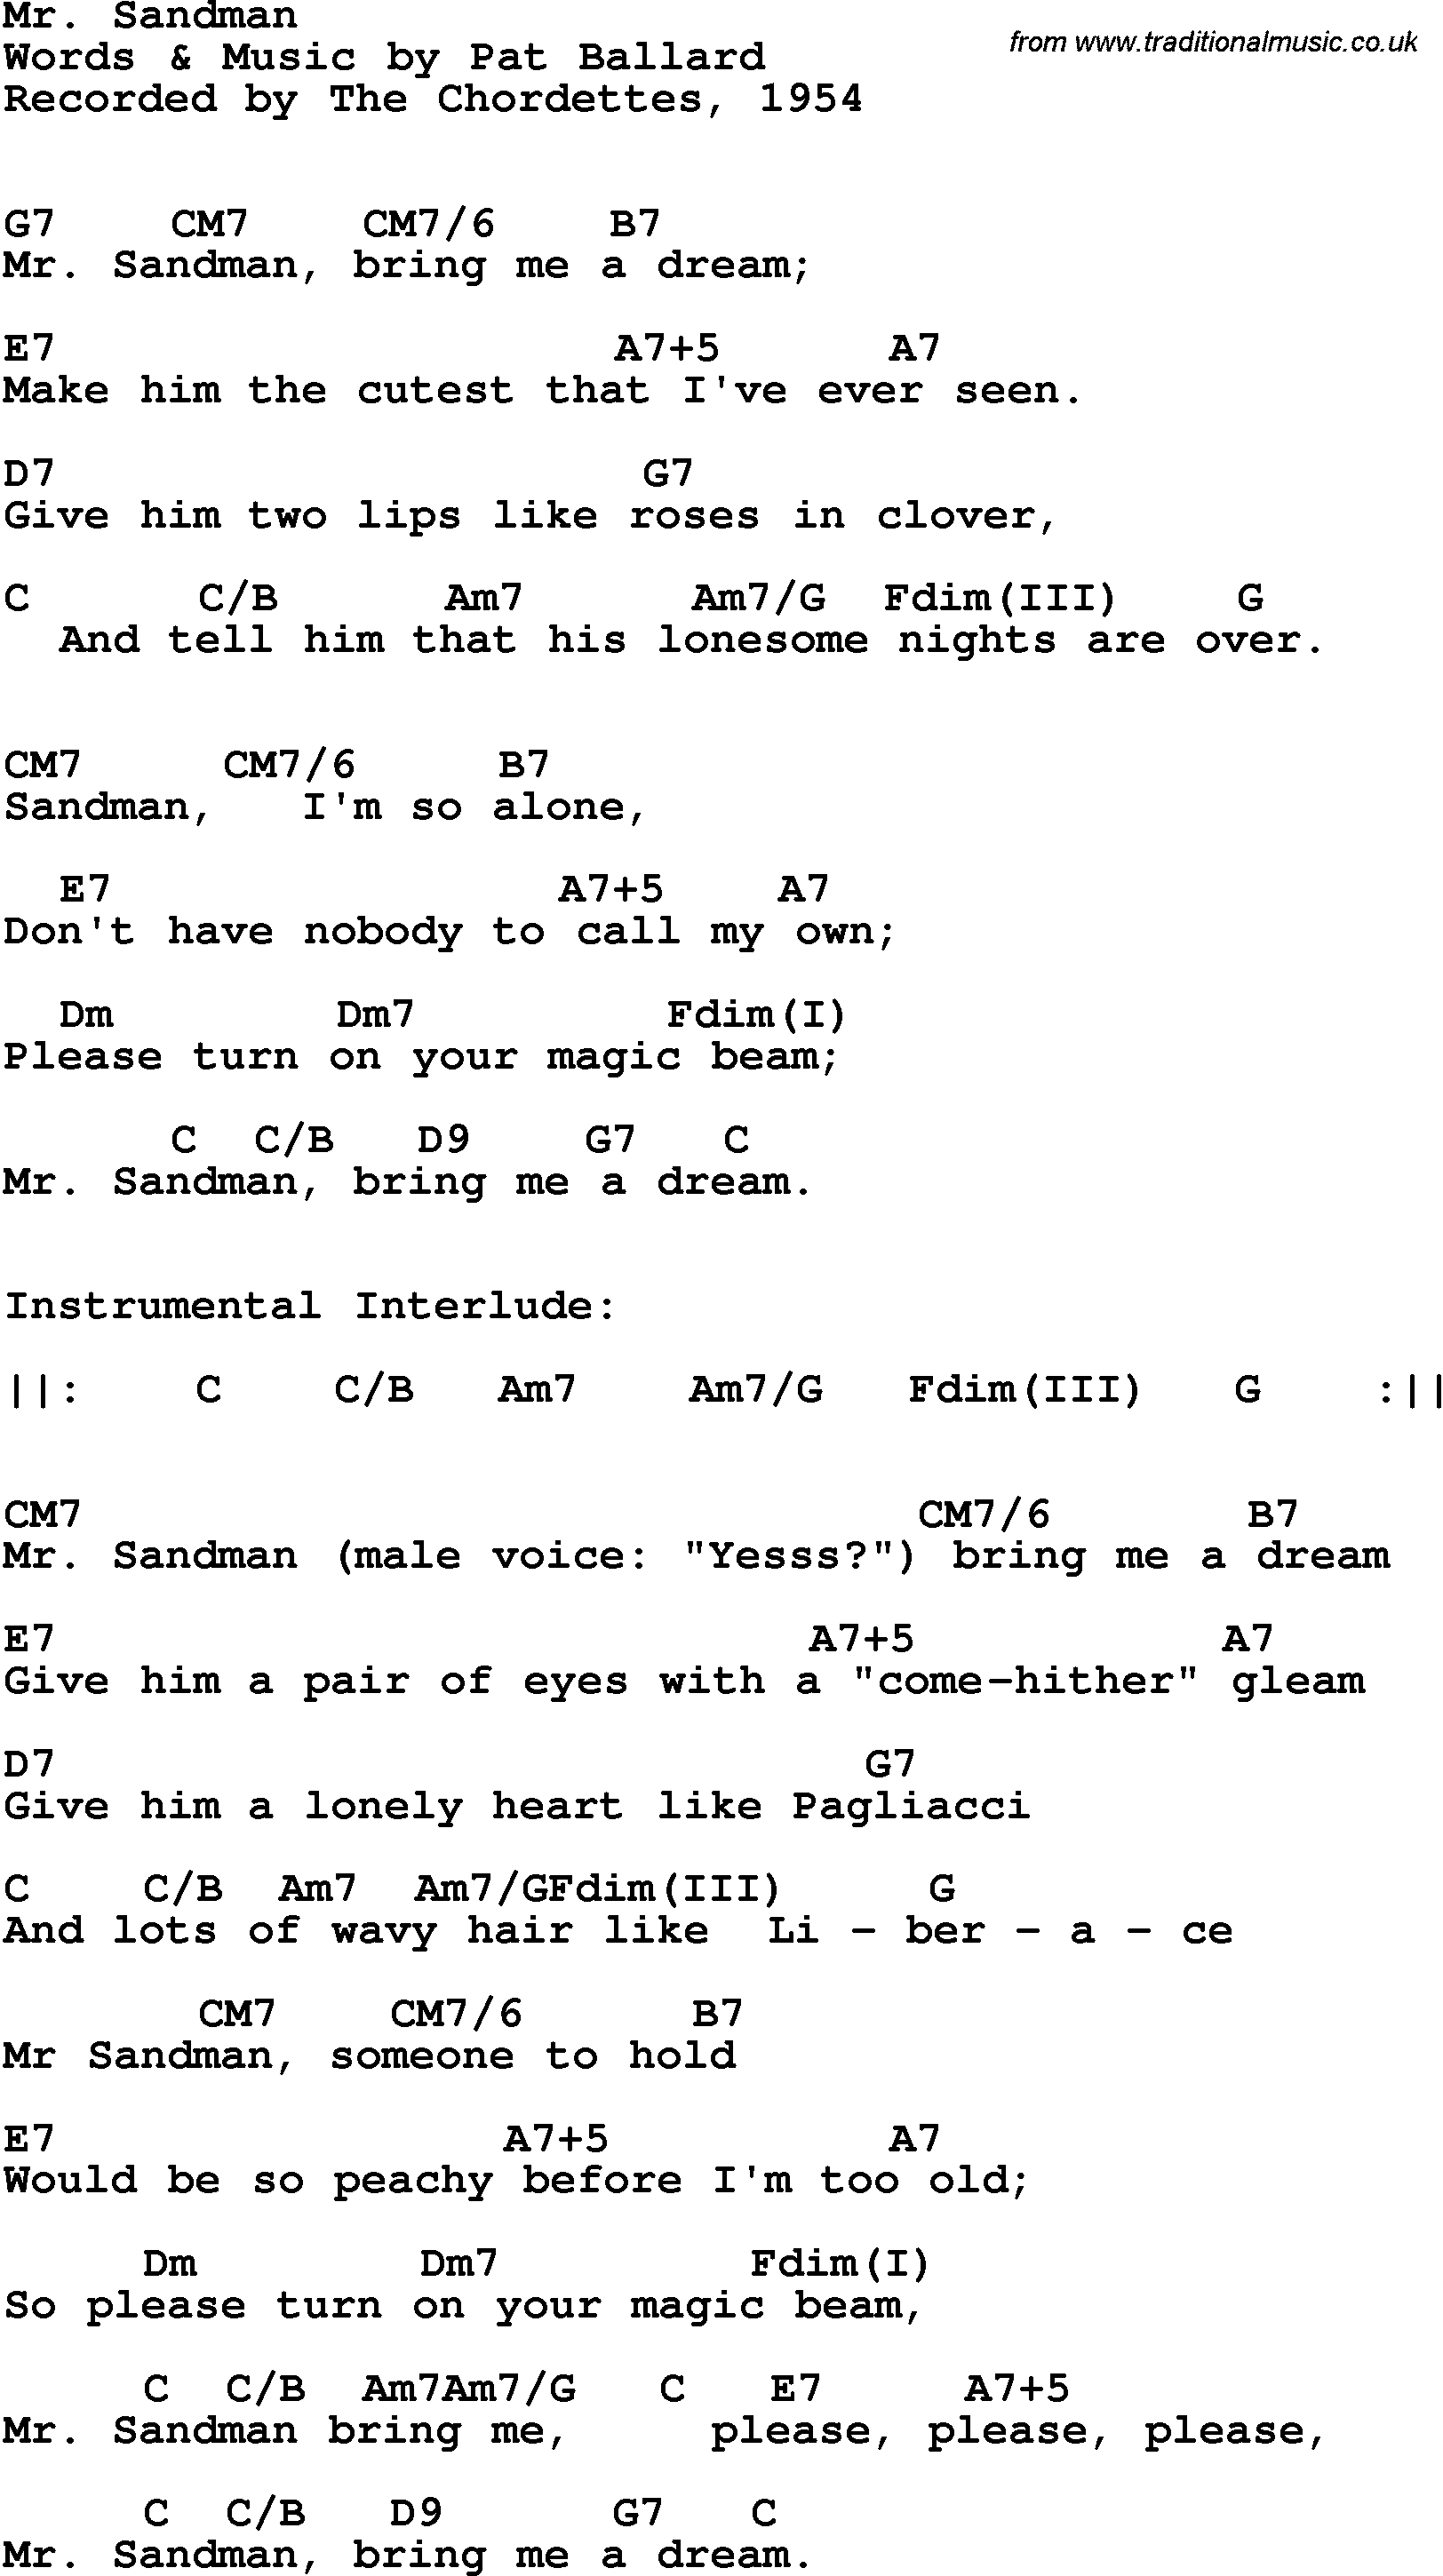 Song lyrics with guitar chords for mr sandman the chordettes song lyrics with guitar chords for mr sandman the chordettes 1954 hexwebz Choice Image